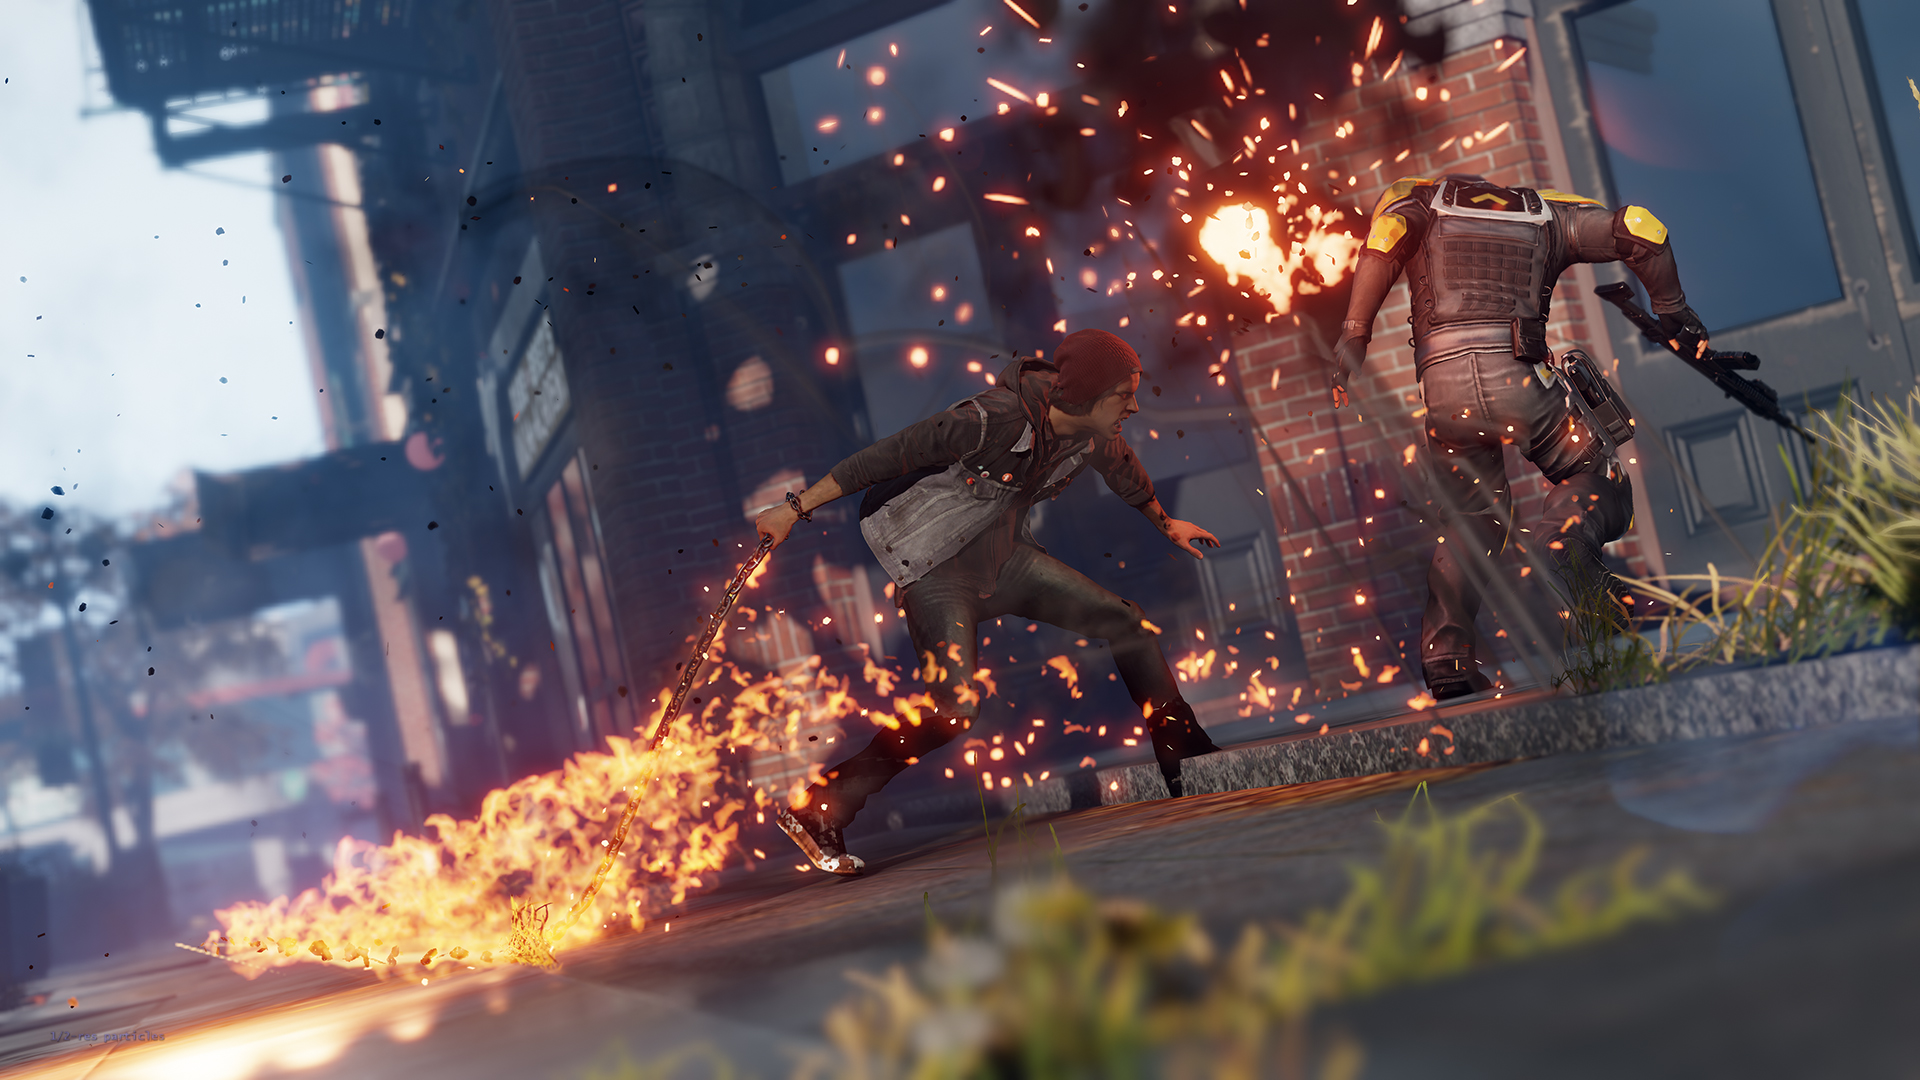 PlayStation Preview: Hands-on with Infamous: Second Son